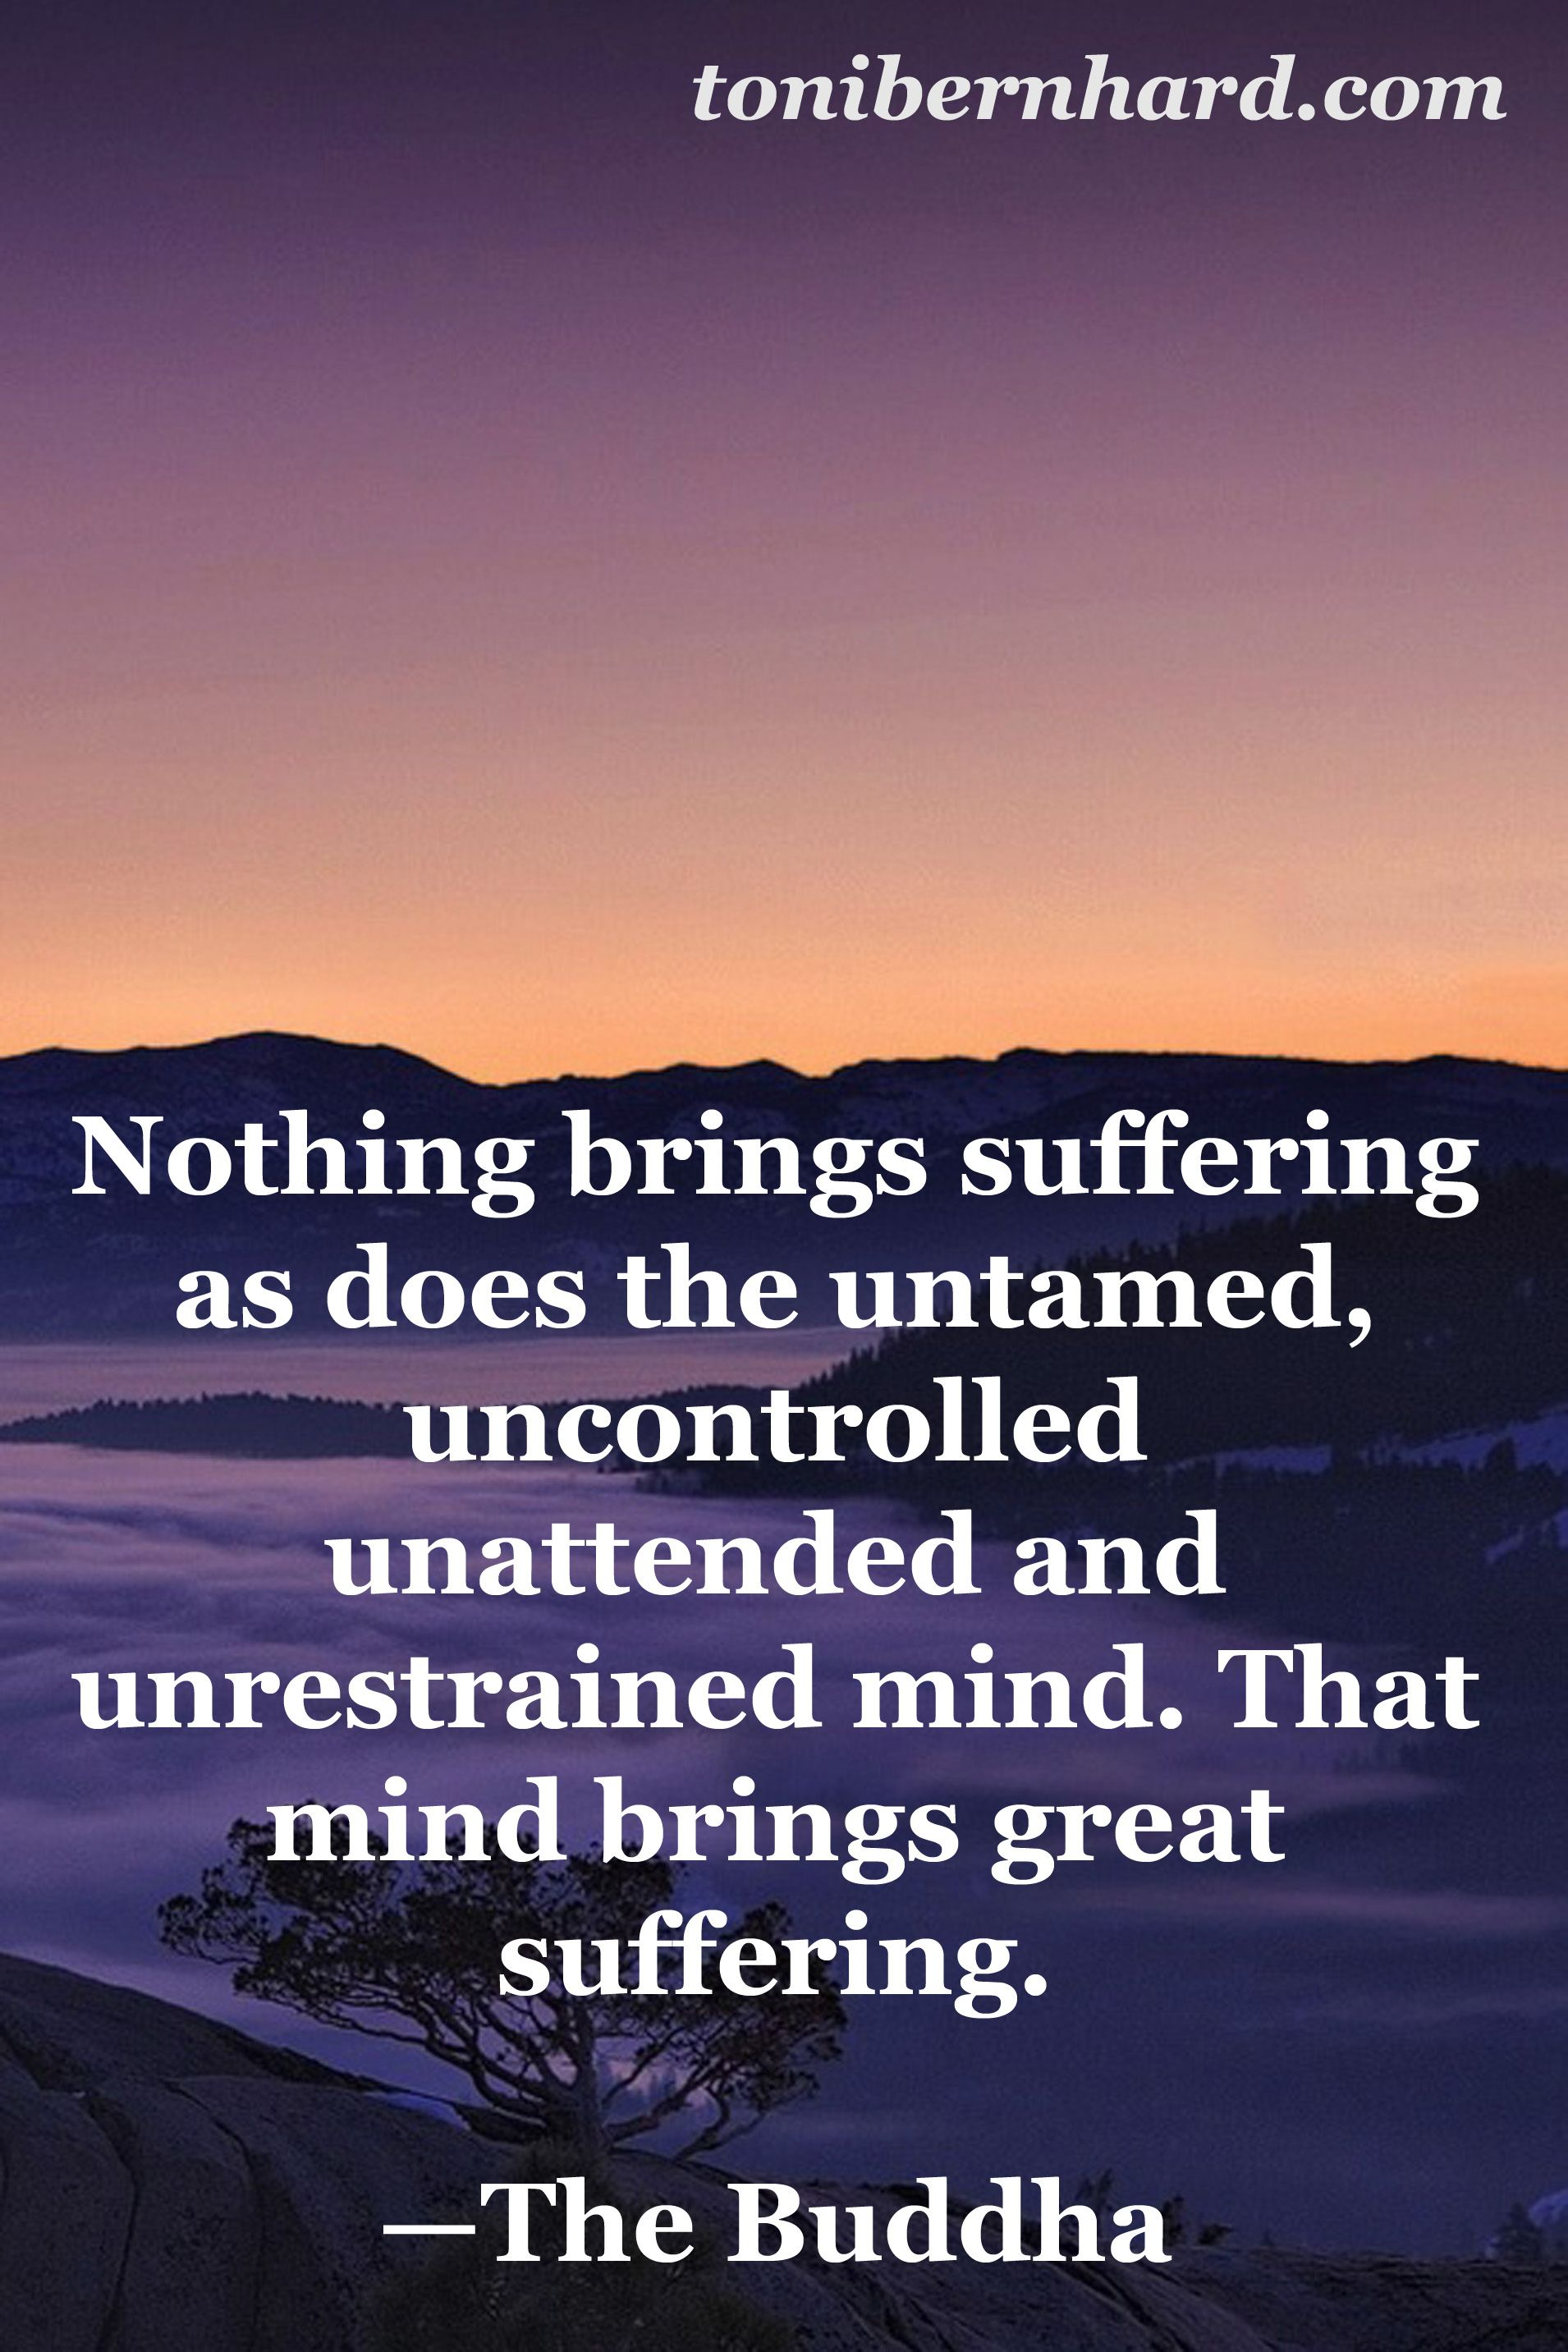 Buddhist Quotes On Death Buddhism Death And Dying Quotes Dead Horse Picture